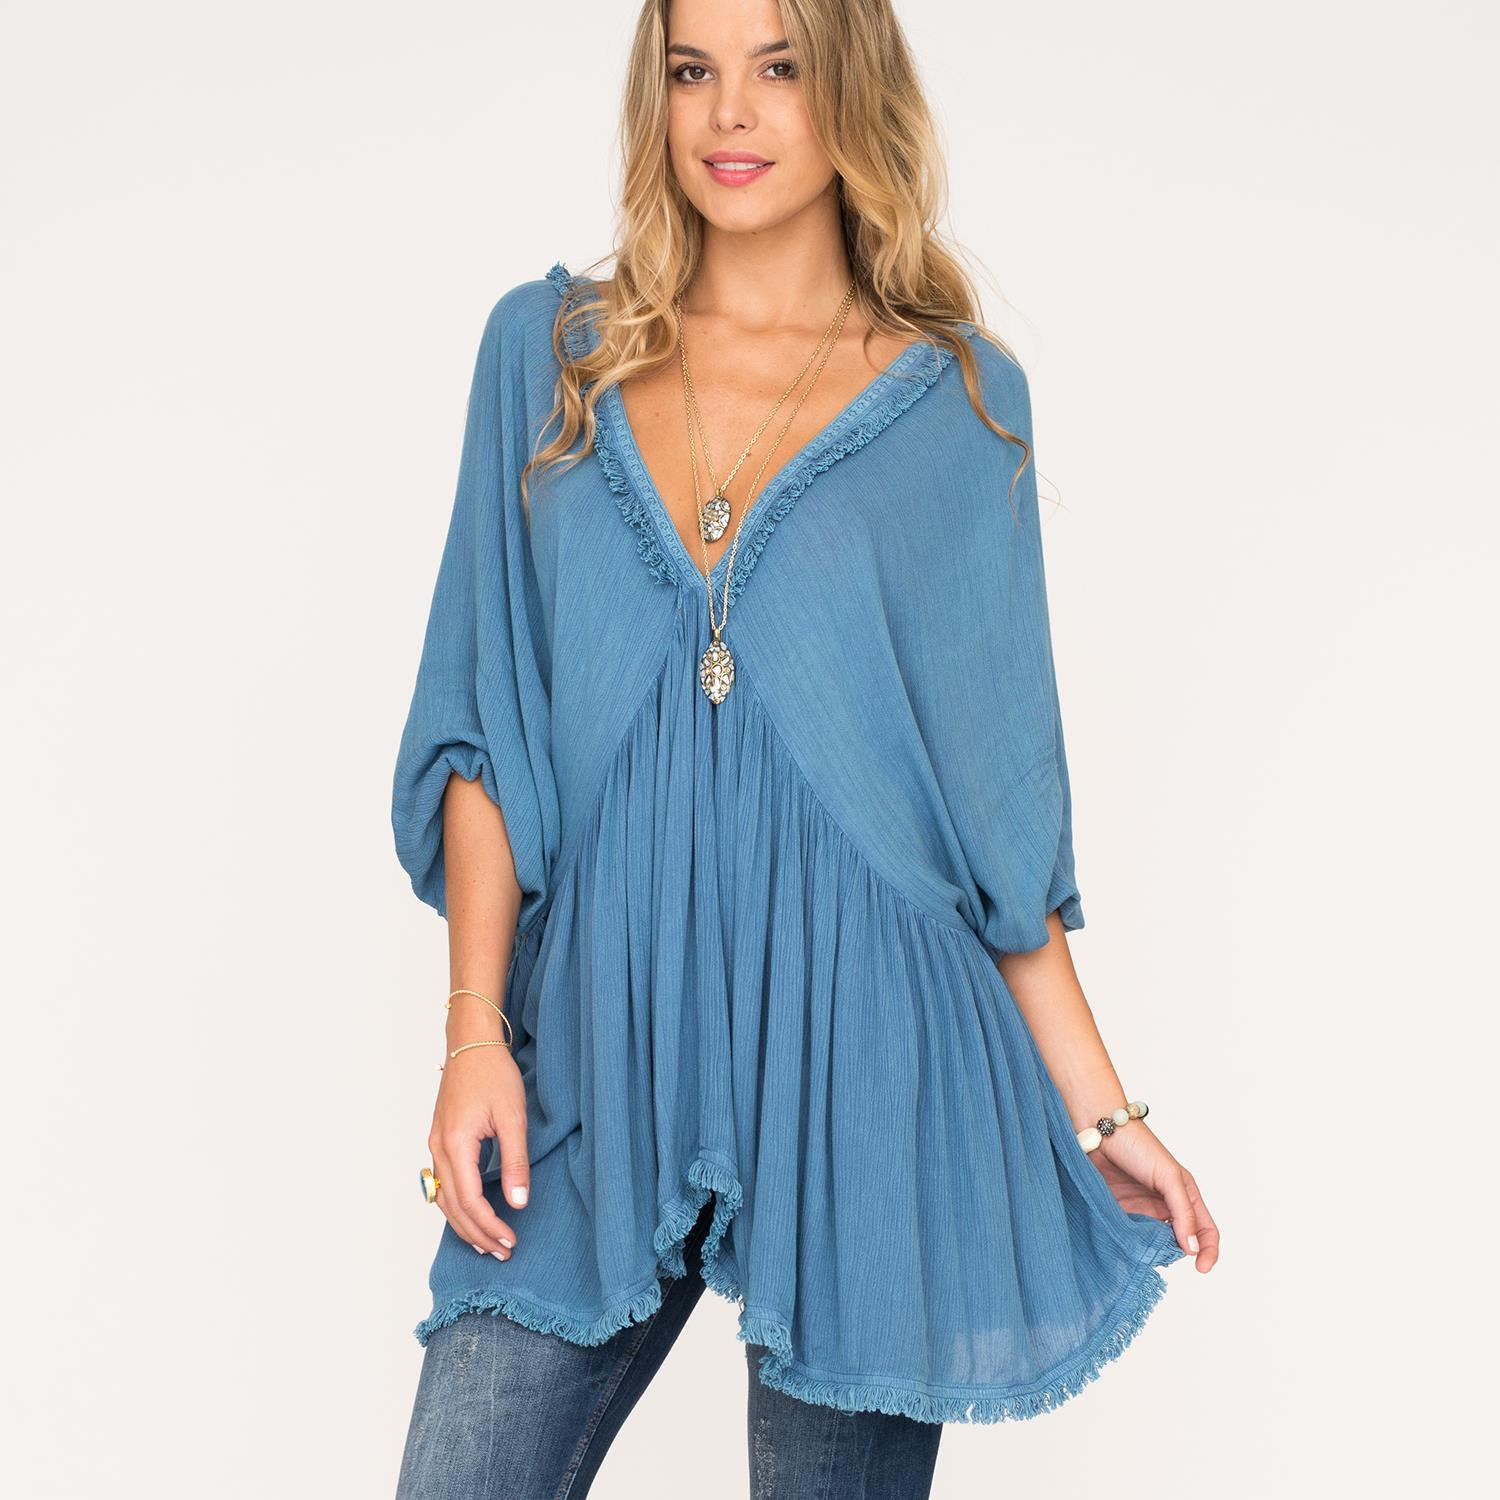 007b631969a6ad Denim Blue V Neck Loose Top One Size Fits Most